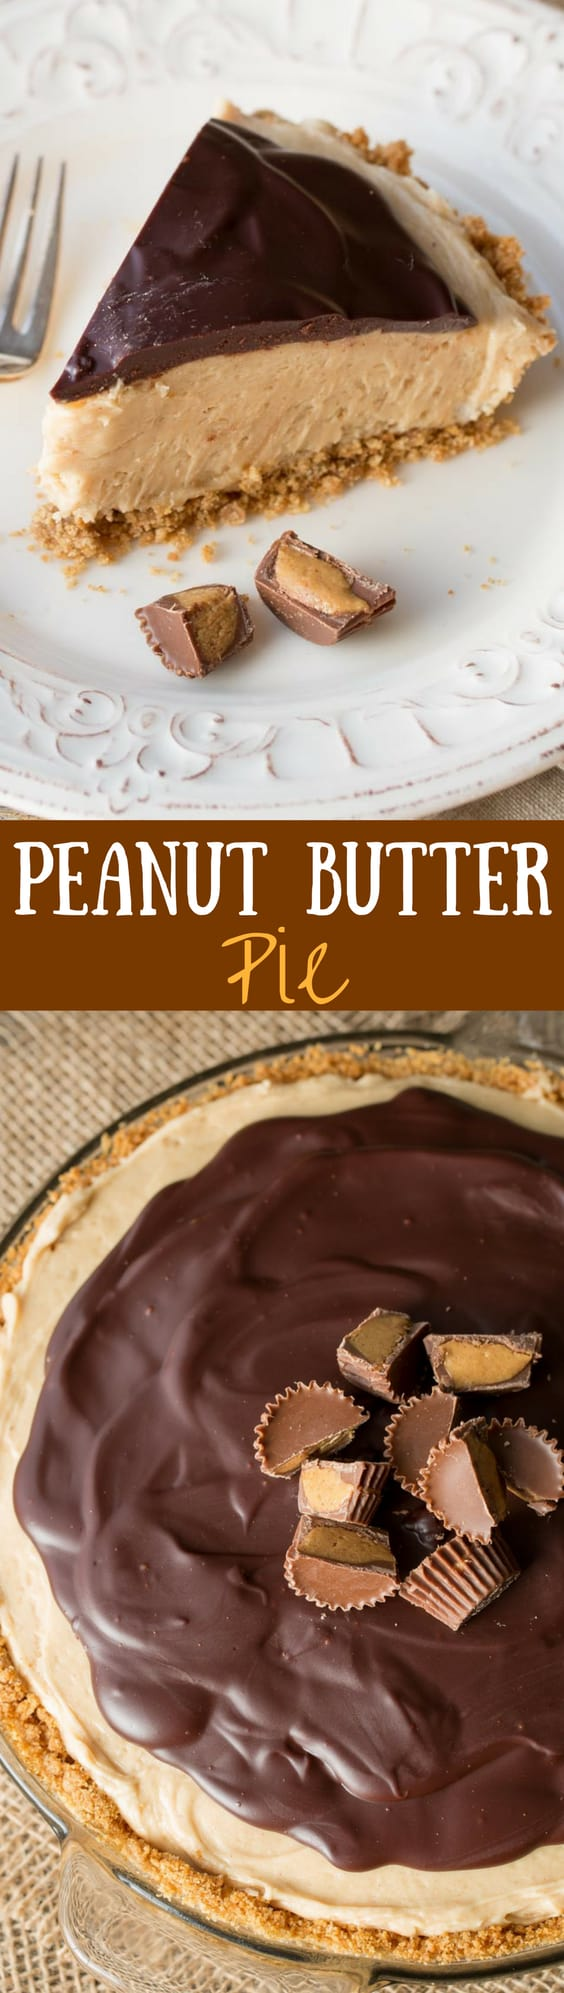 Pie - A rich and creamy peanut butter pie filling topped with smooth ...